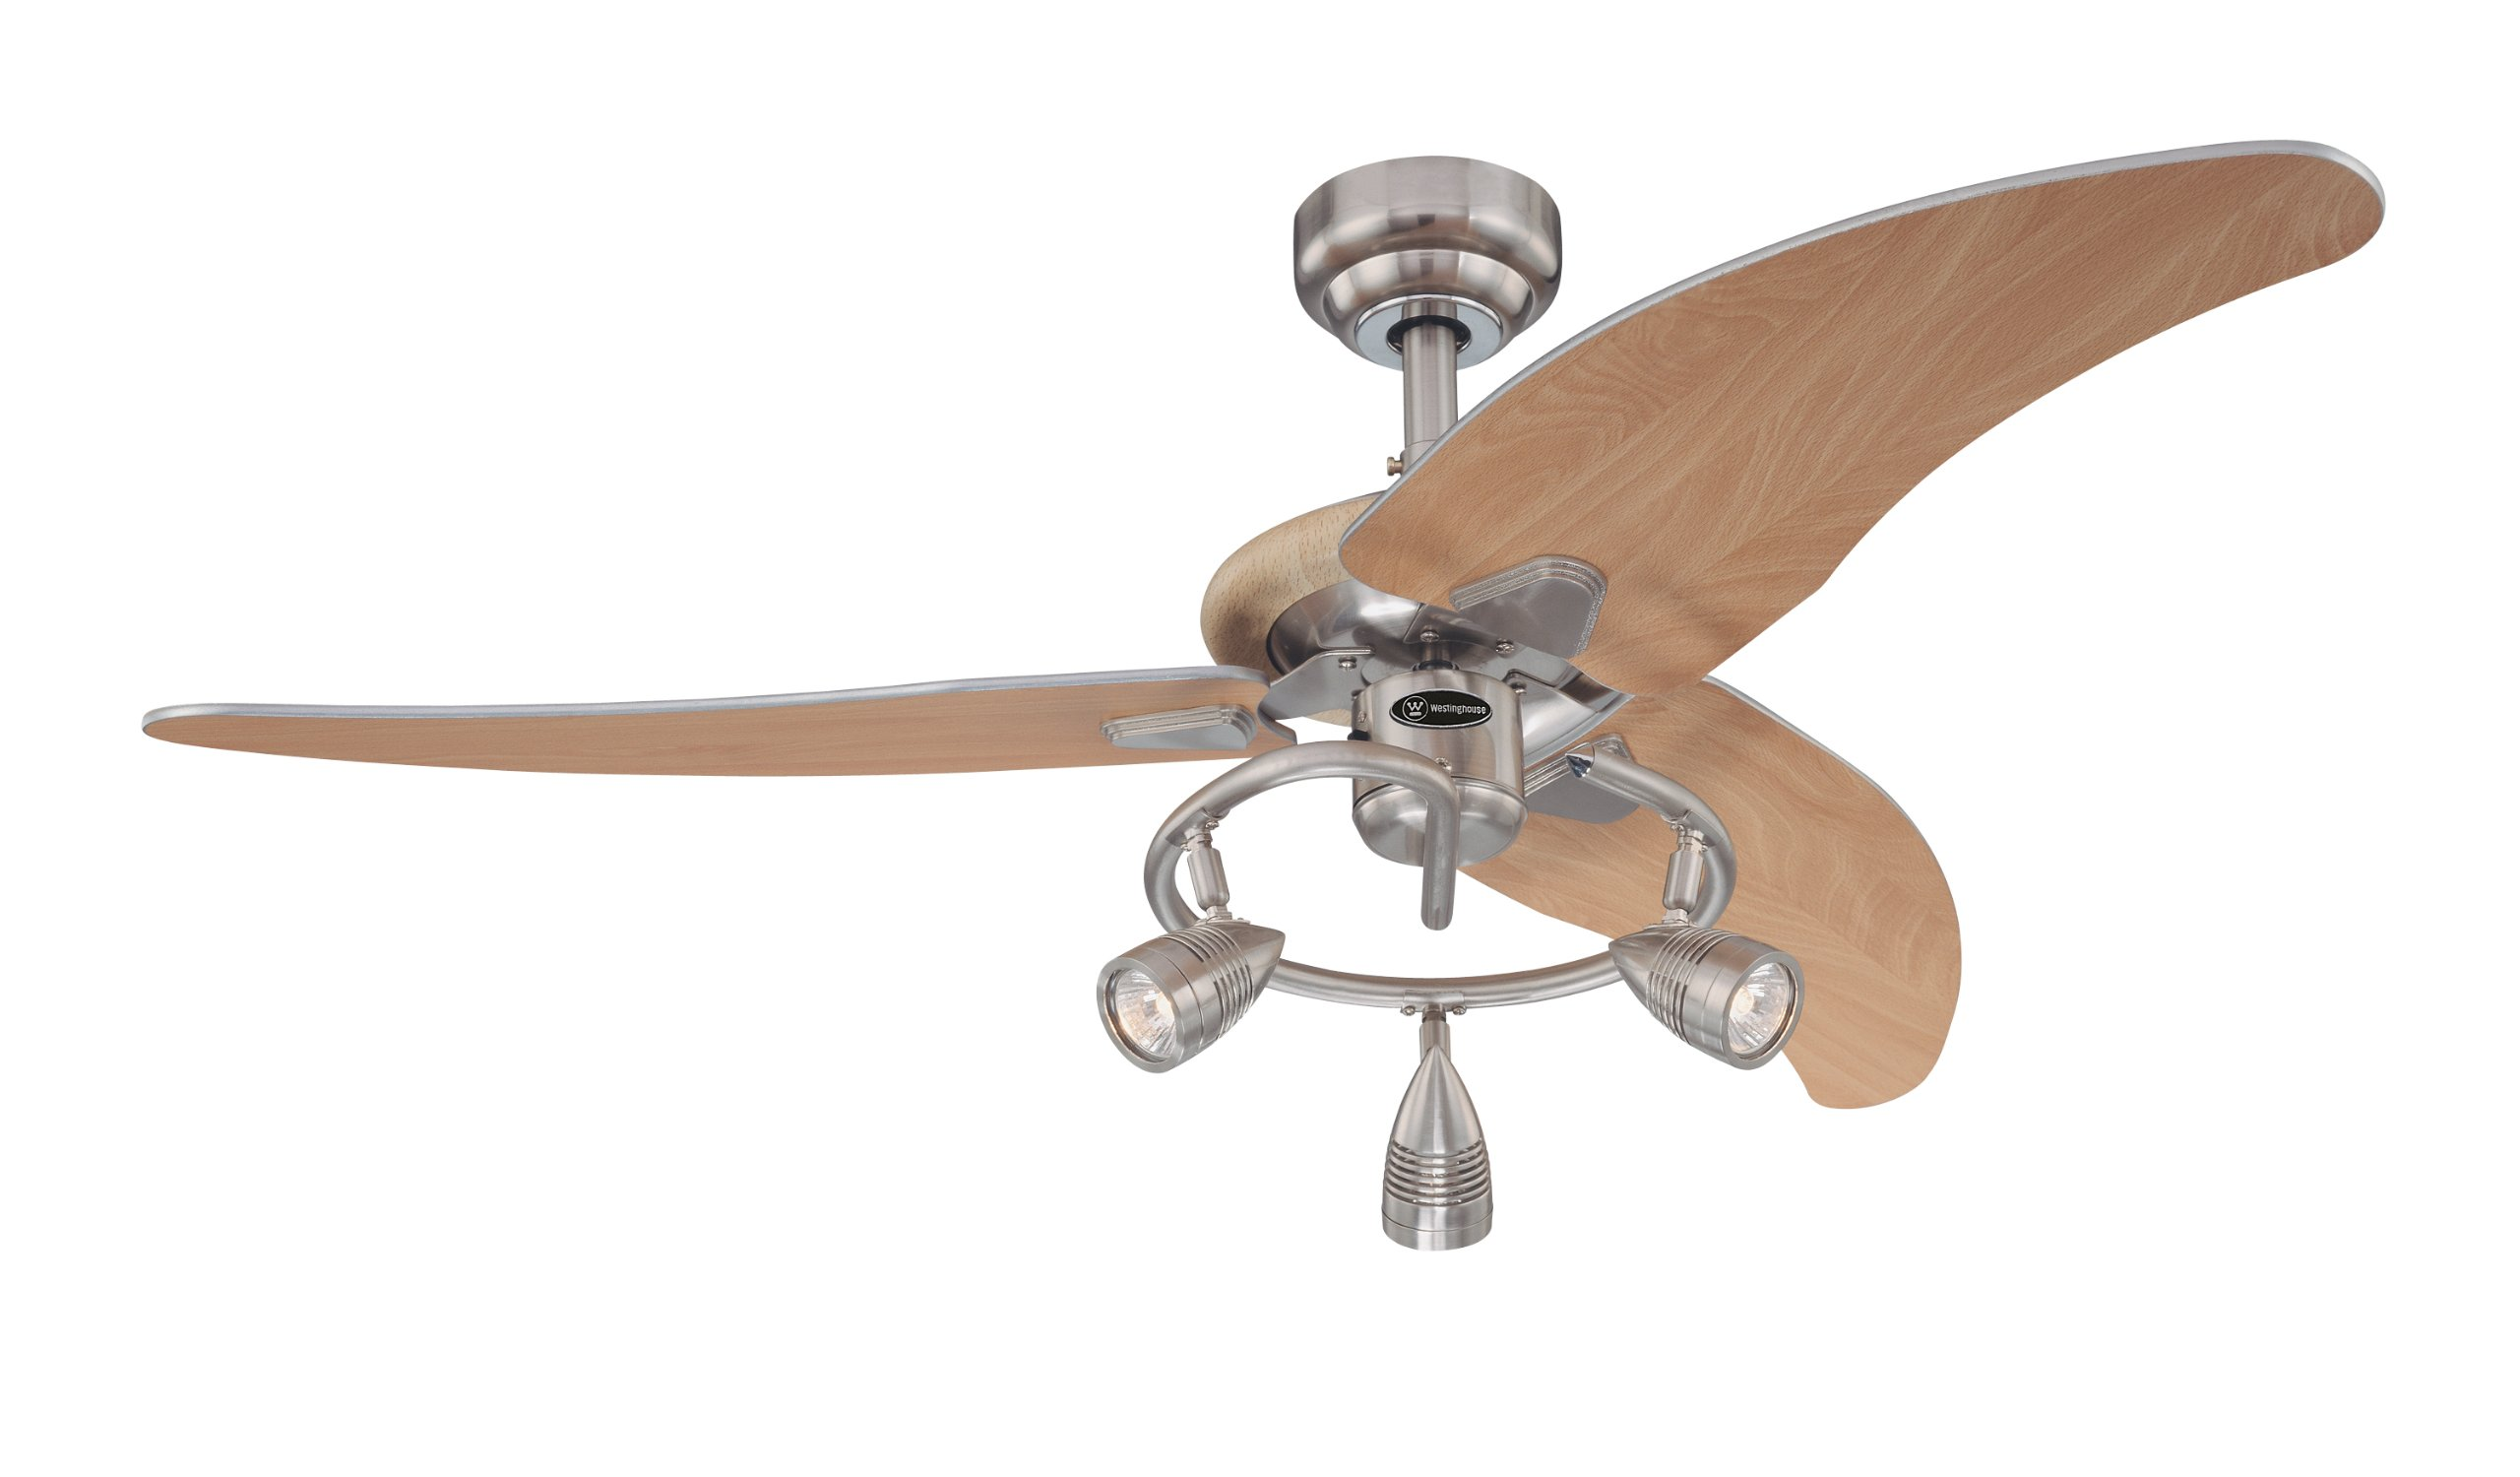 7850500 Elite 48-Inch Brushed Nickel Indoor Ceiling Fan, Light Kit with Three Spotlights by Westinghouse (Image #1)